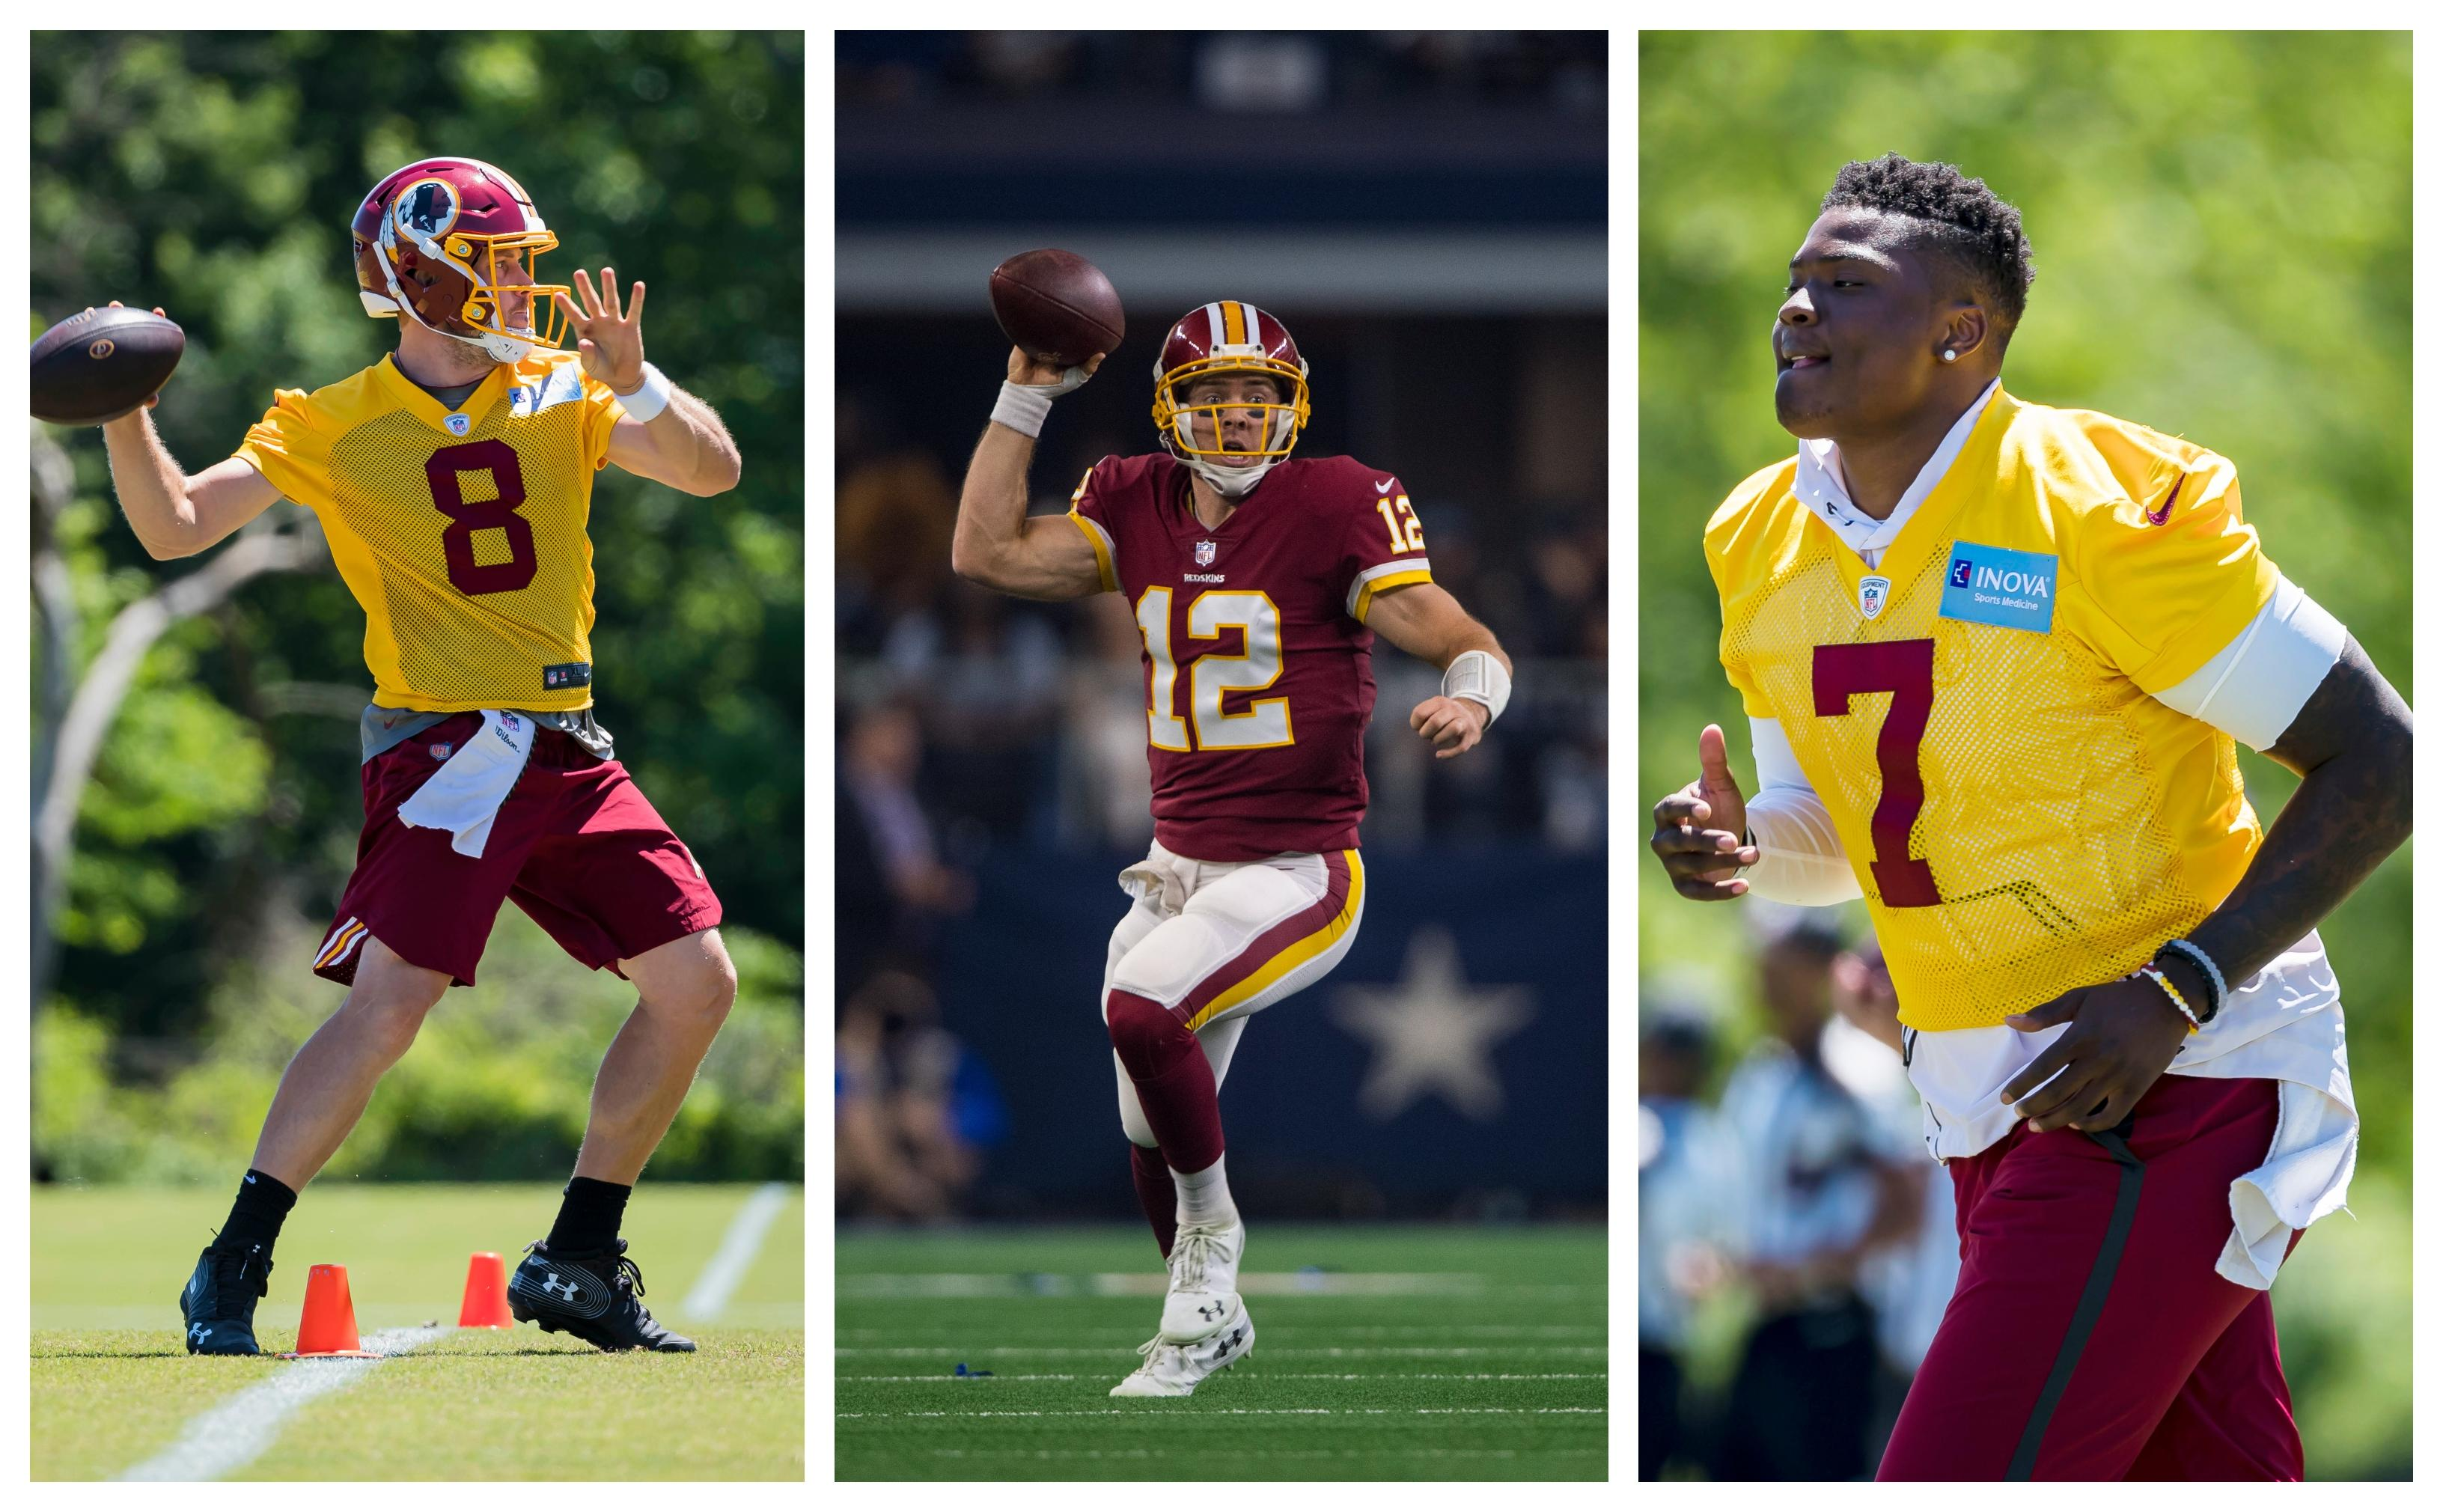 2926a5f980f65 Mike Florio: The Redskins should start the QB who 'puts you in the best  position to win'